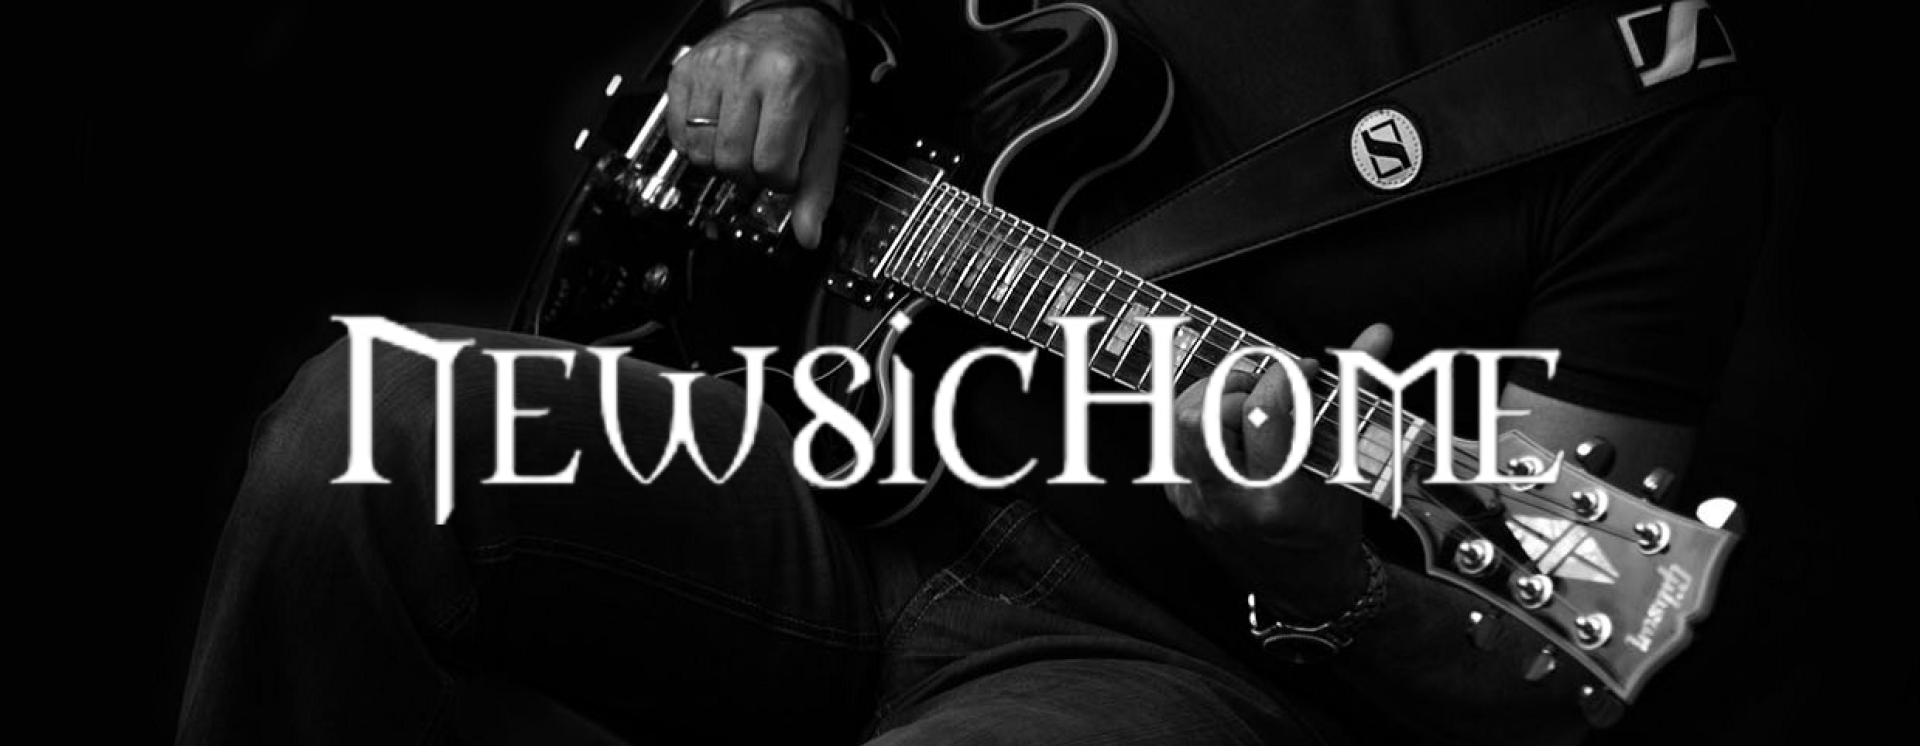 1417449298 newsichome banner reverbnation  copy